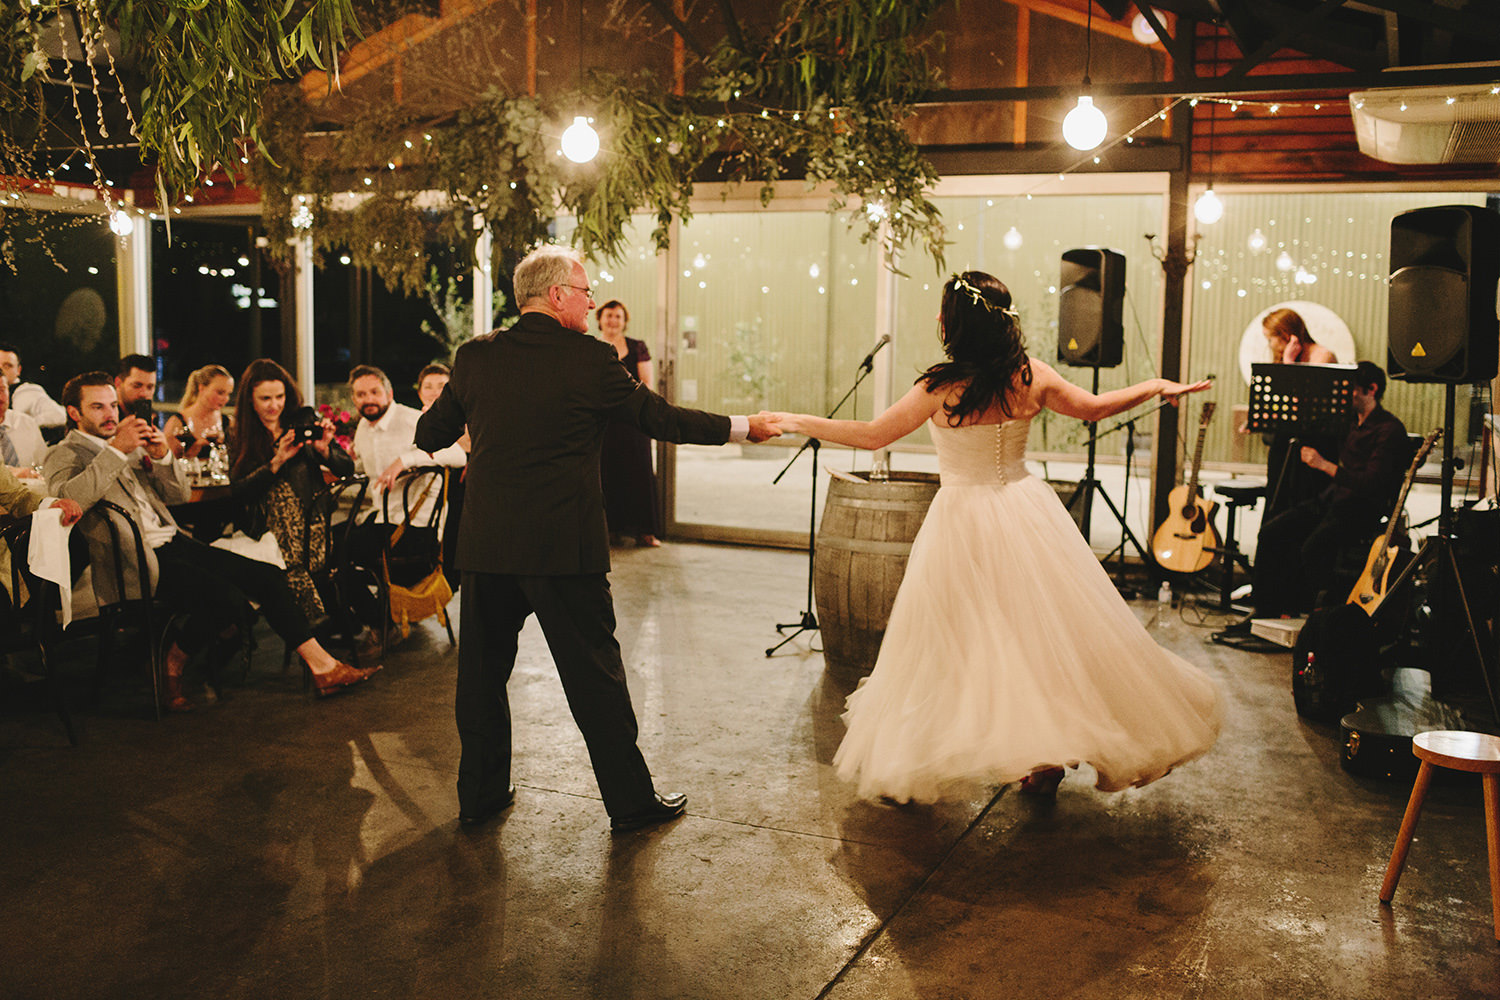 Melbourne_Winery_Wedding_Chris_Merrily177.JPG